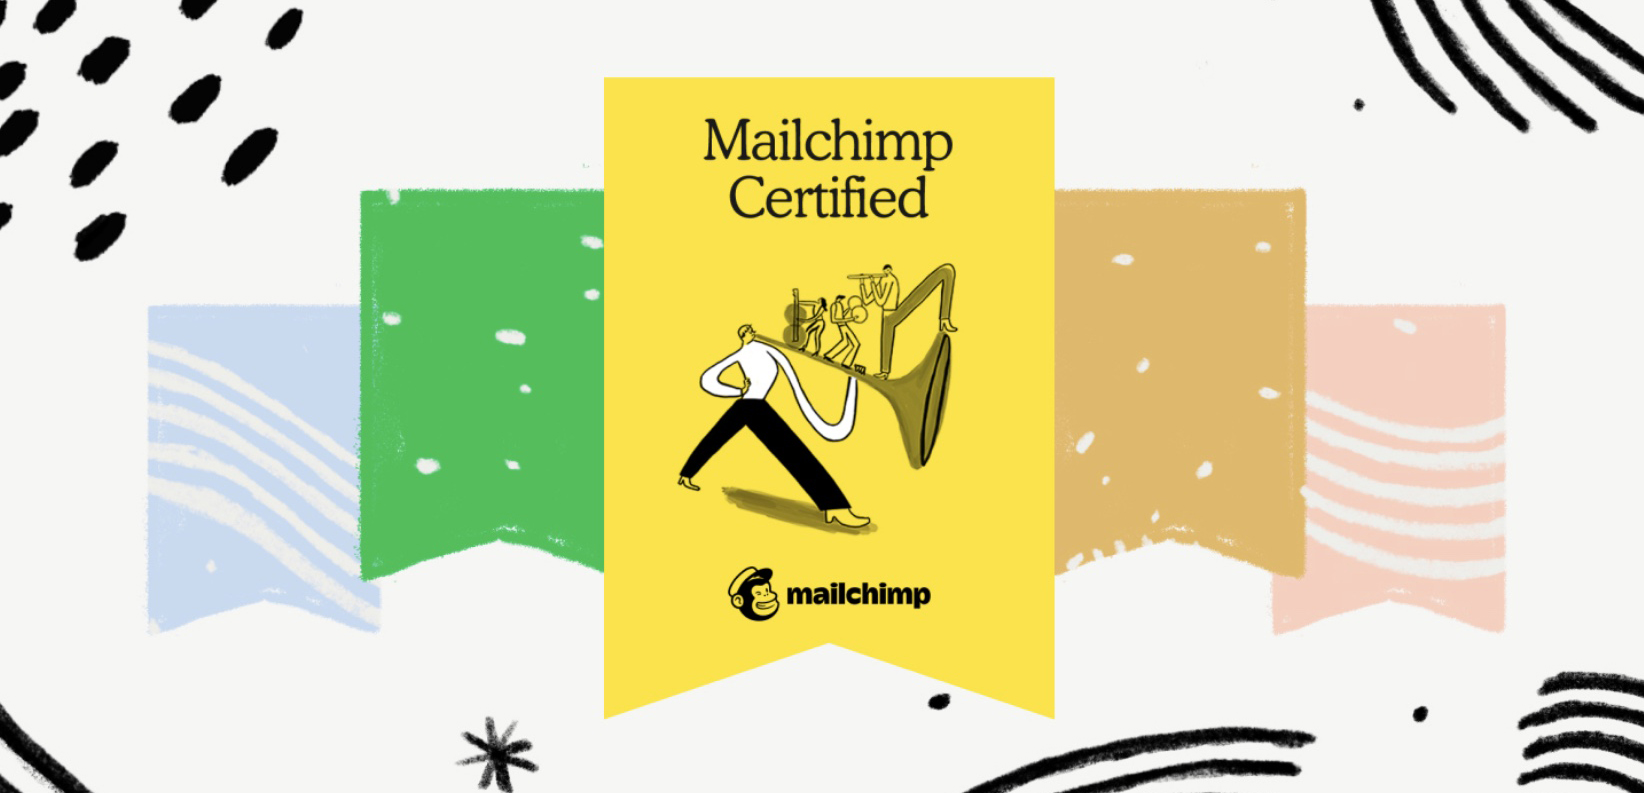 mailchimp certified website II